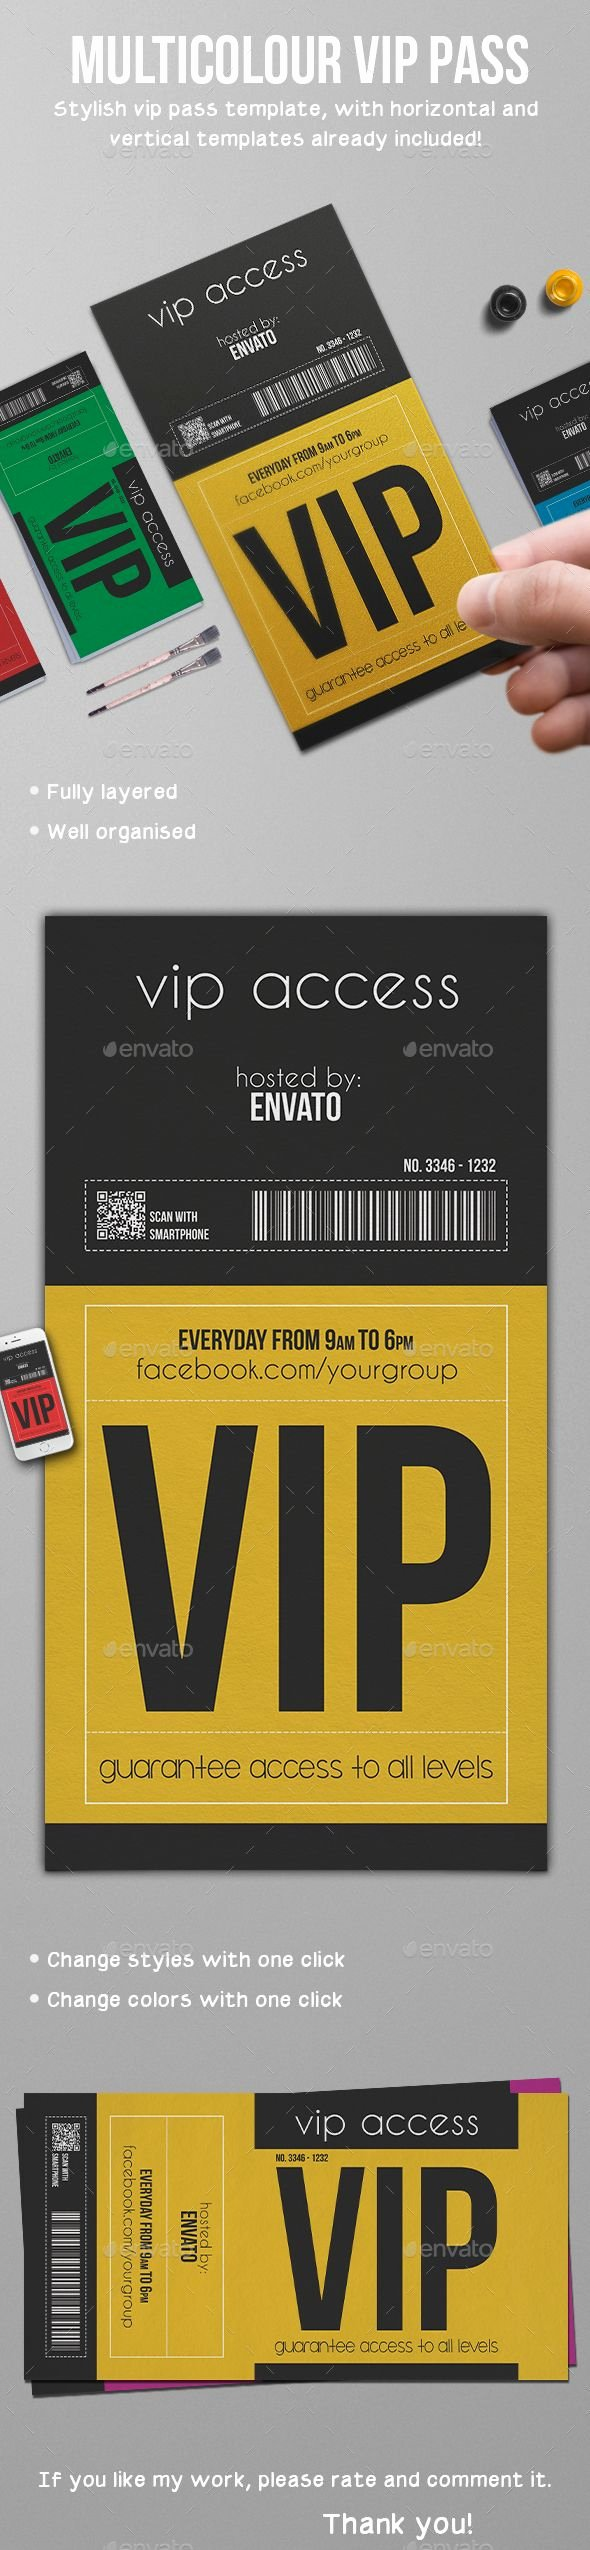 Vip Pass Template Microsoft Word Awesome Pin by Best Graphic Design On Card & Invite Design